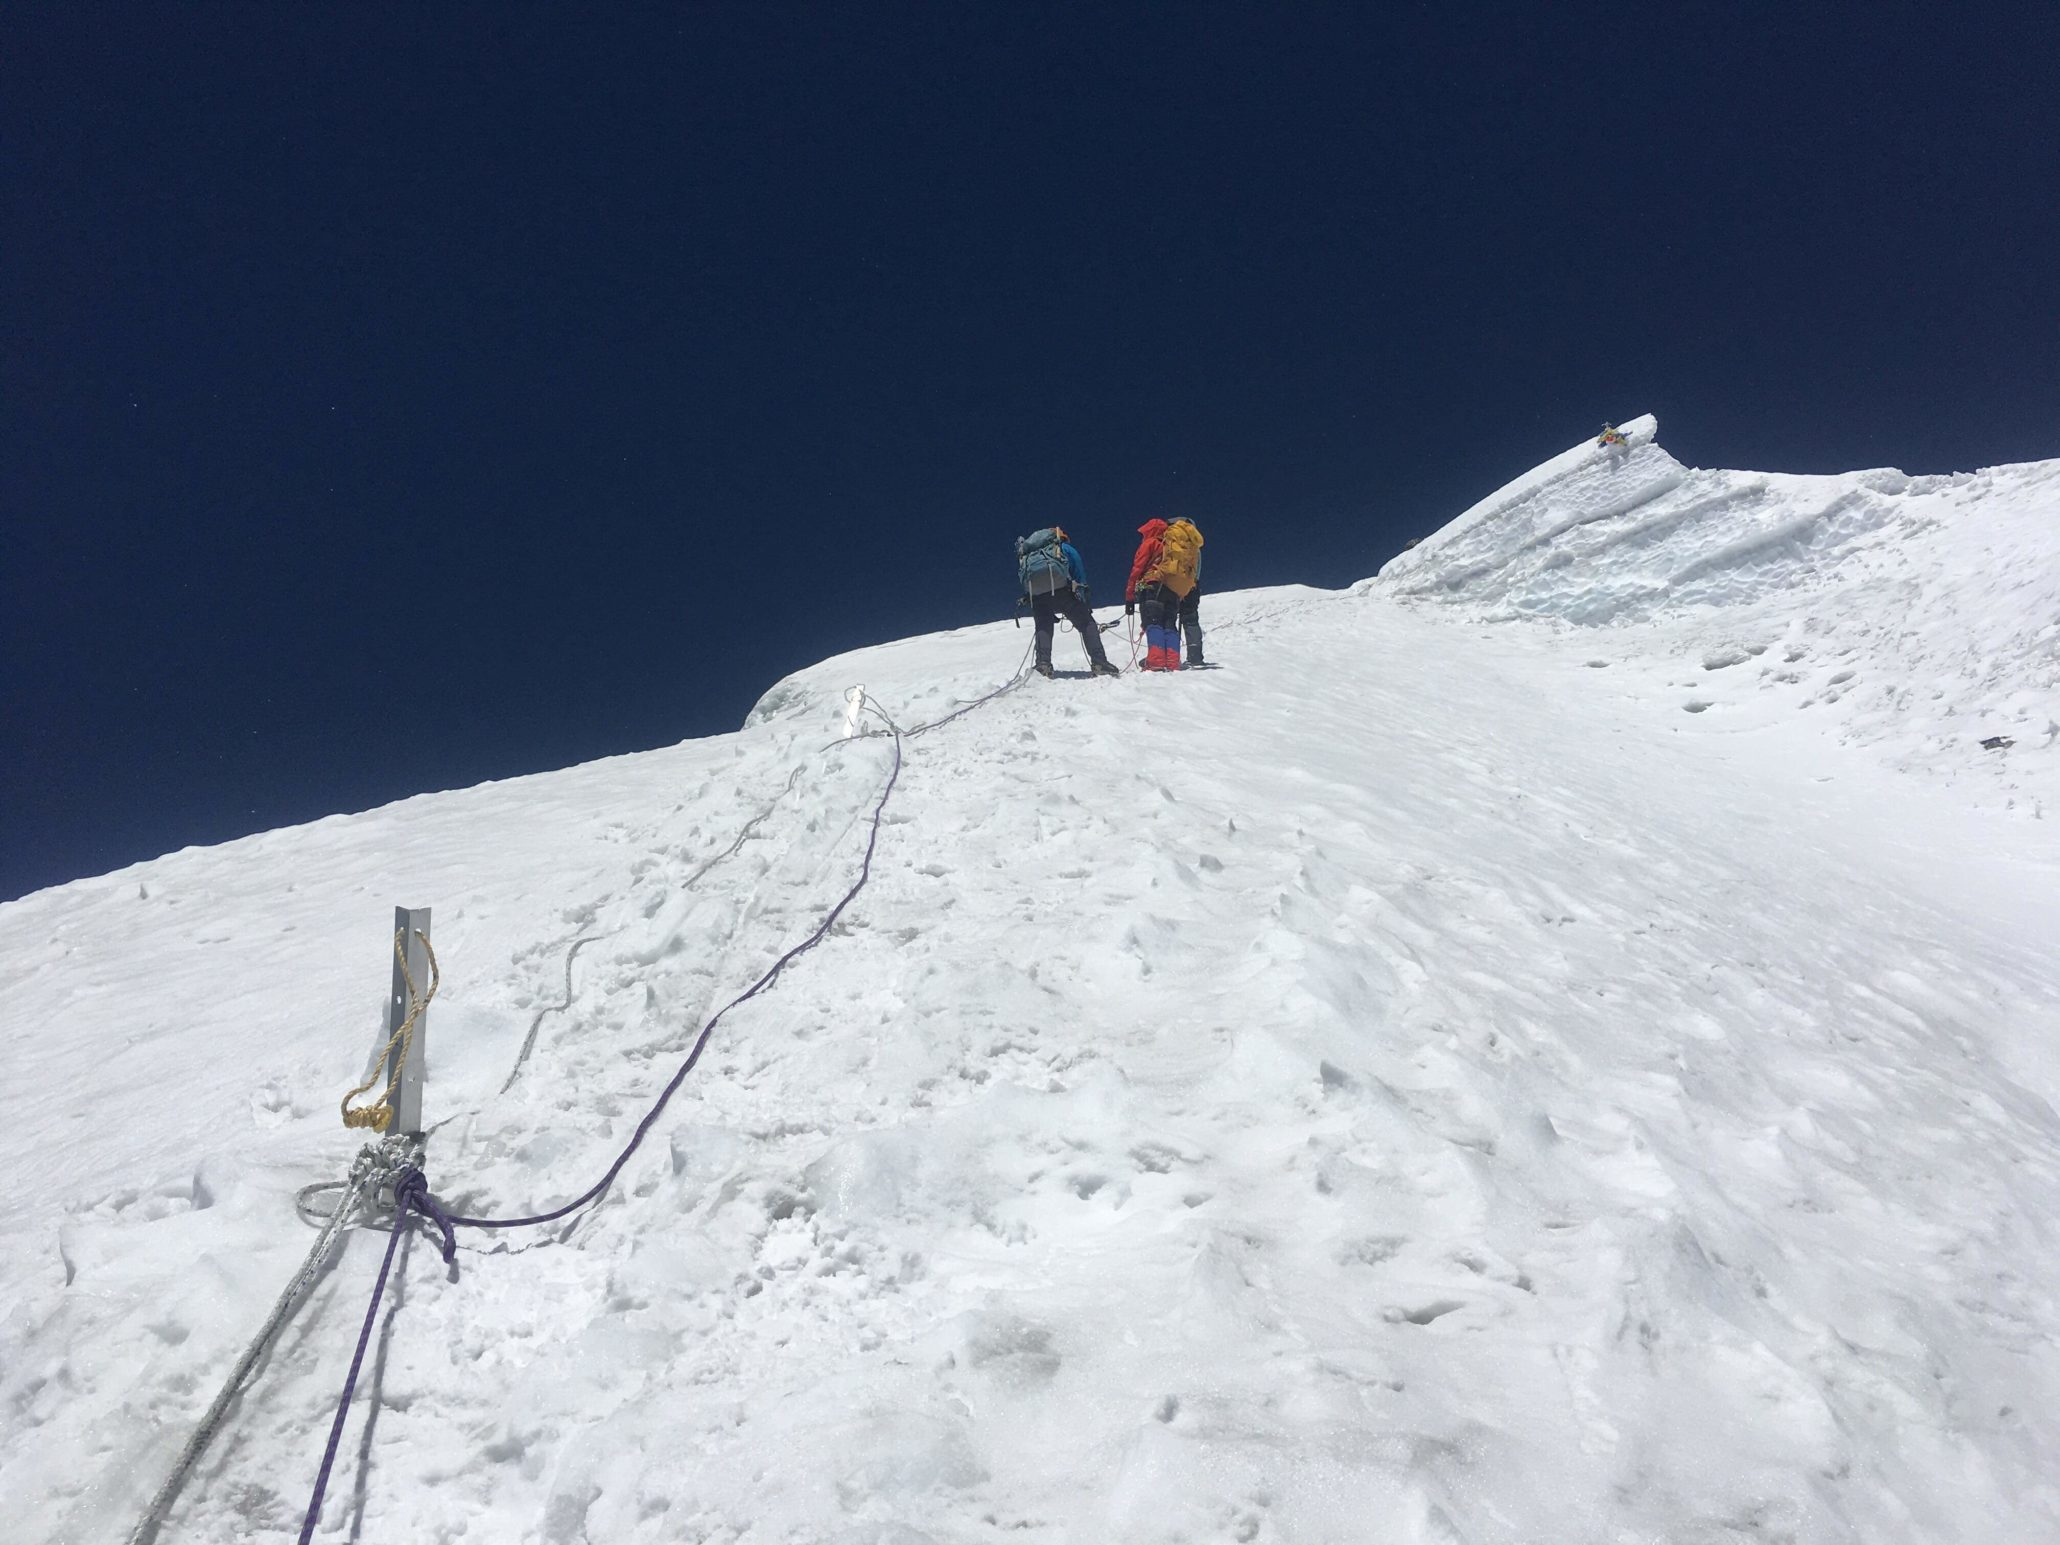 2 himalayan trekkers at the peak of mountain covered with snow